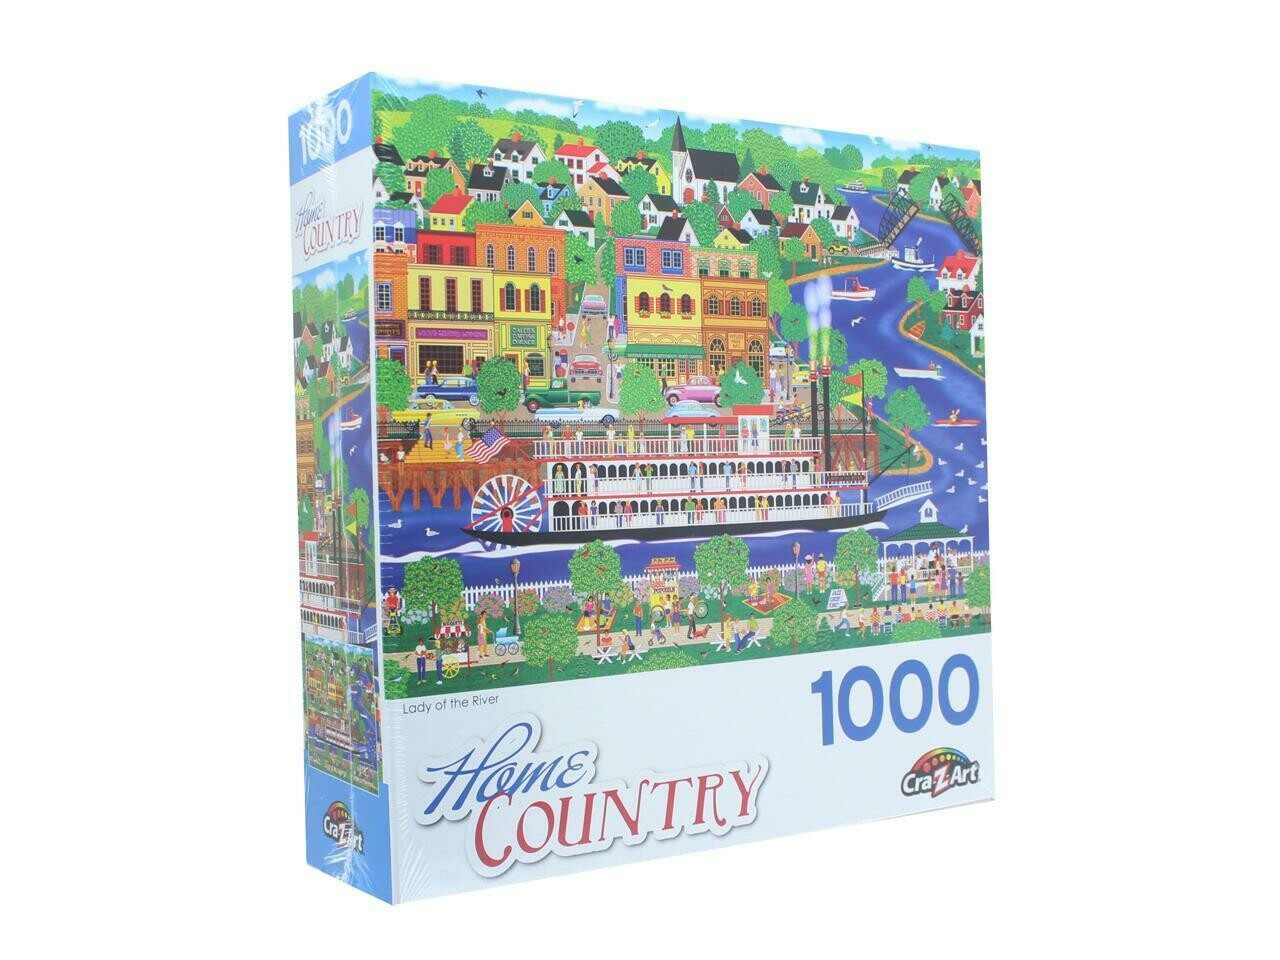 Lady of the River 1000 Piece Jigsaw Puzzle